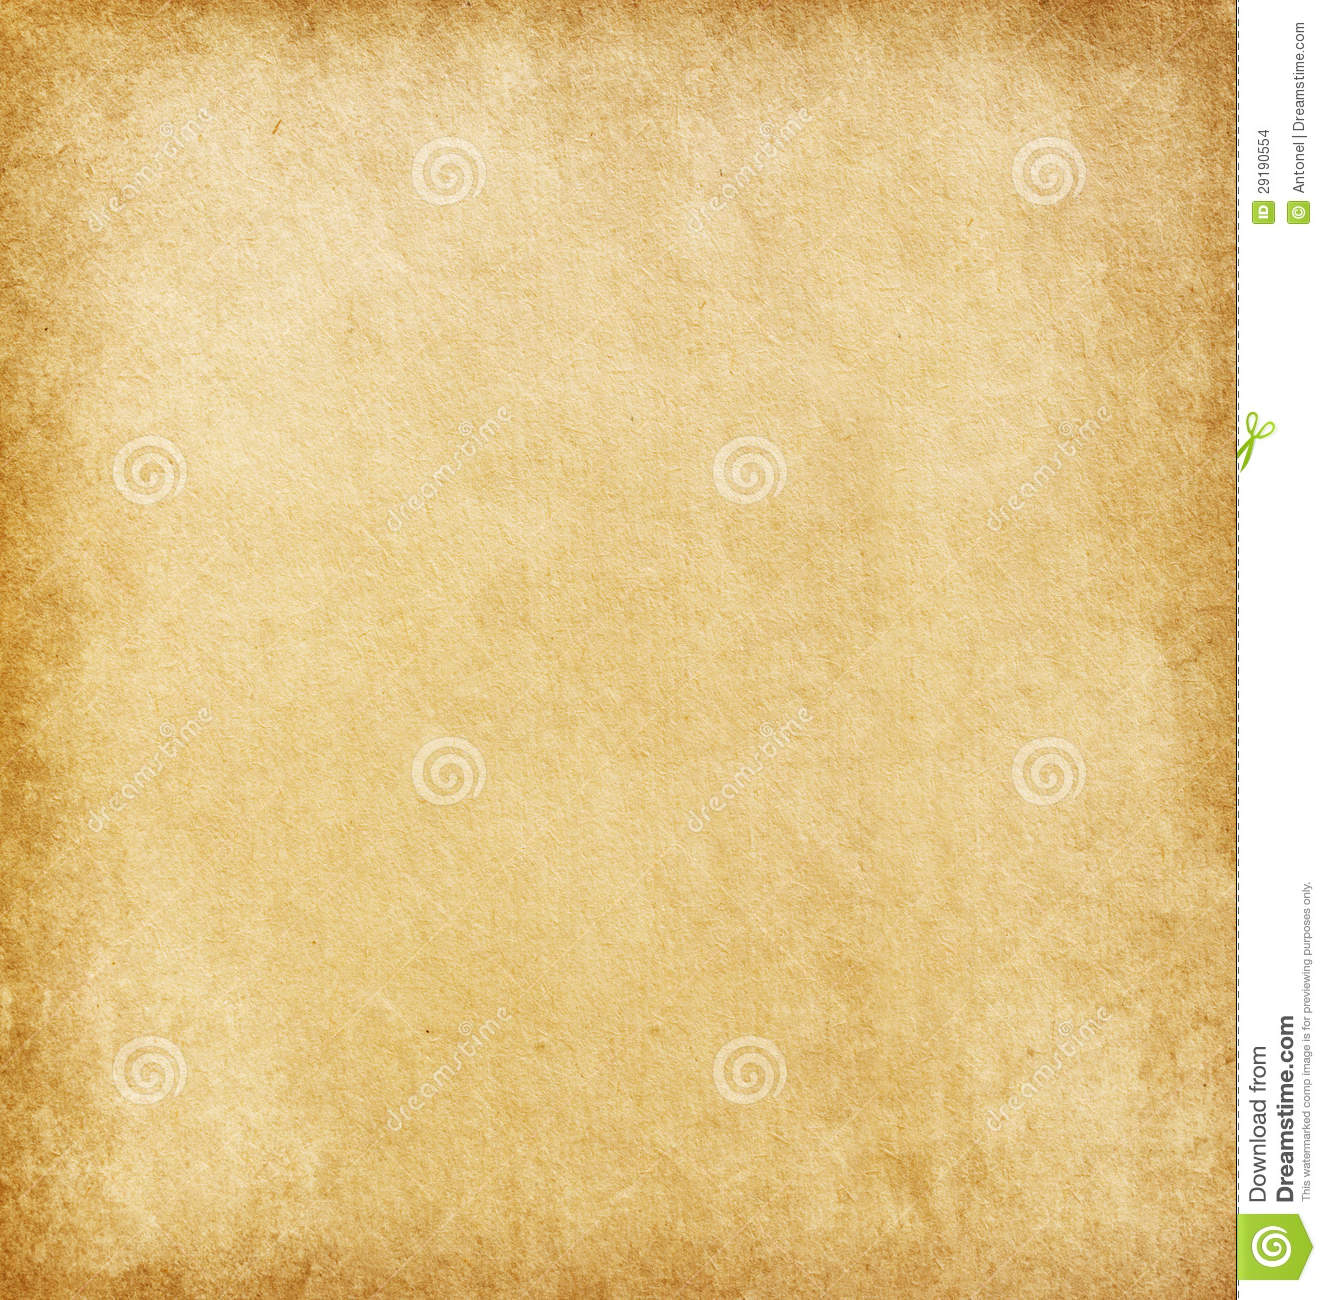 Old Beige Paper Stock Images - Image: 29190554